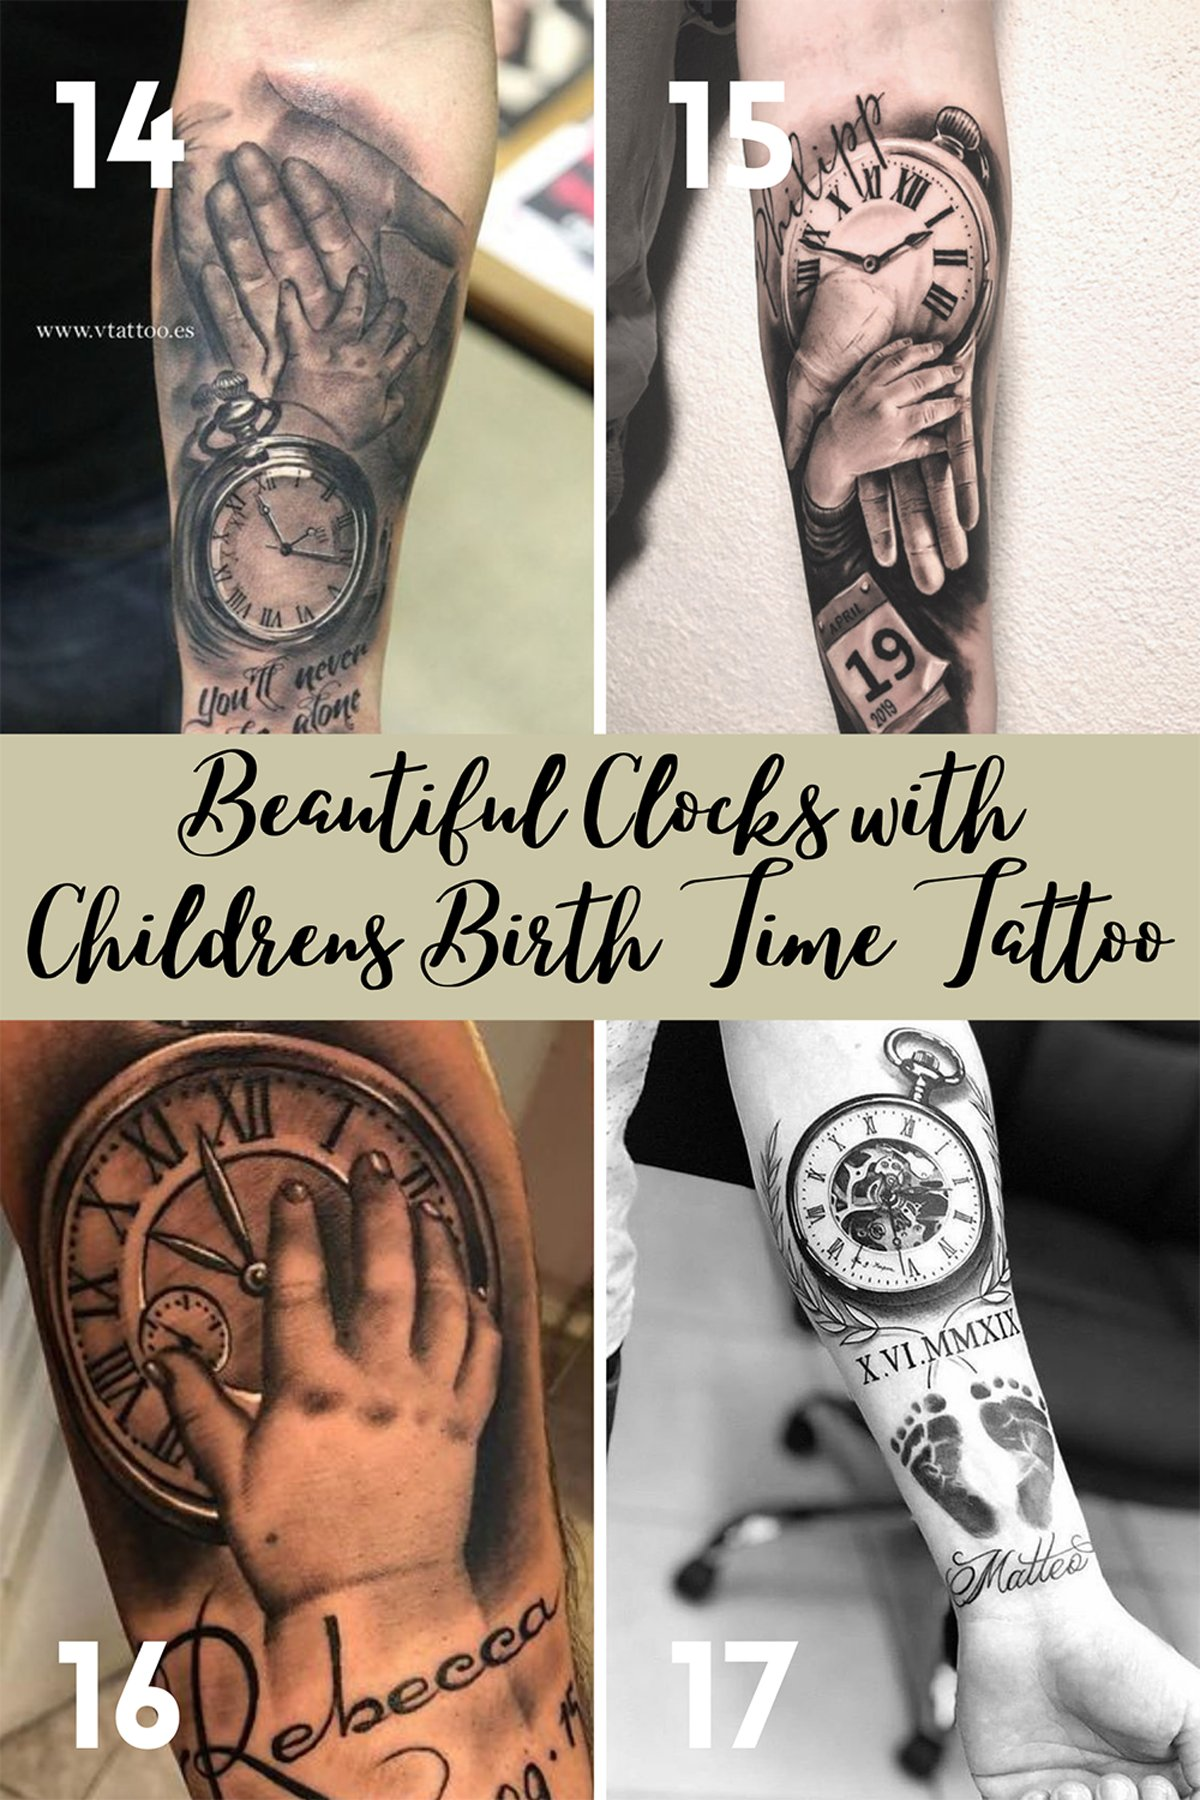 Tattoos of Childs Birth Time